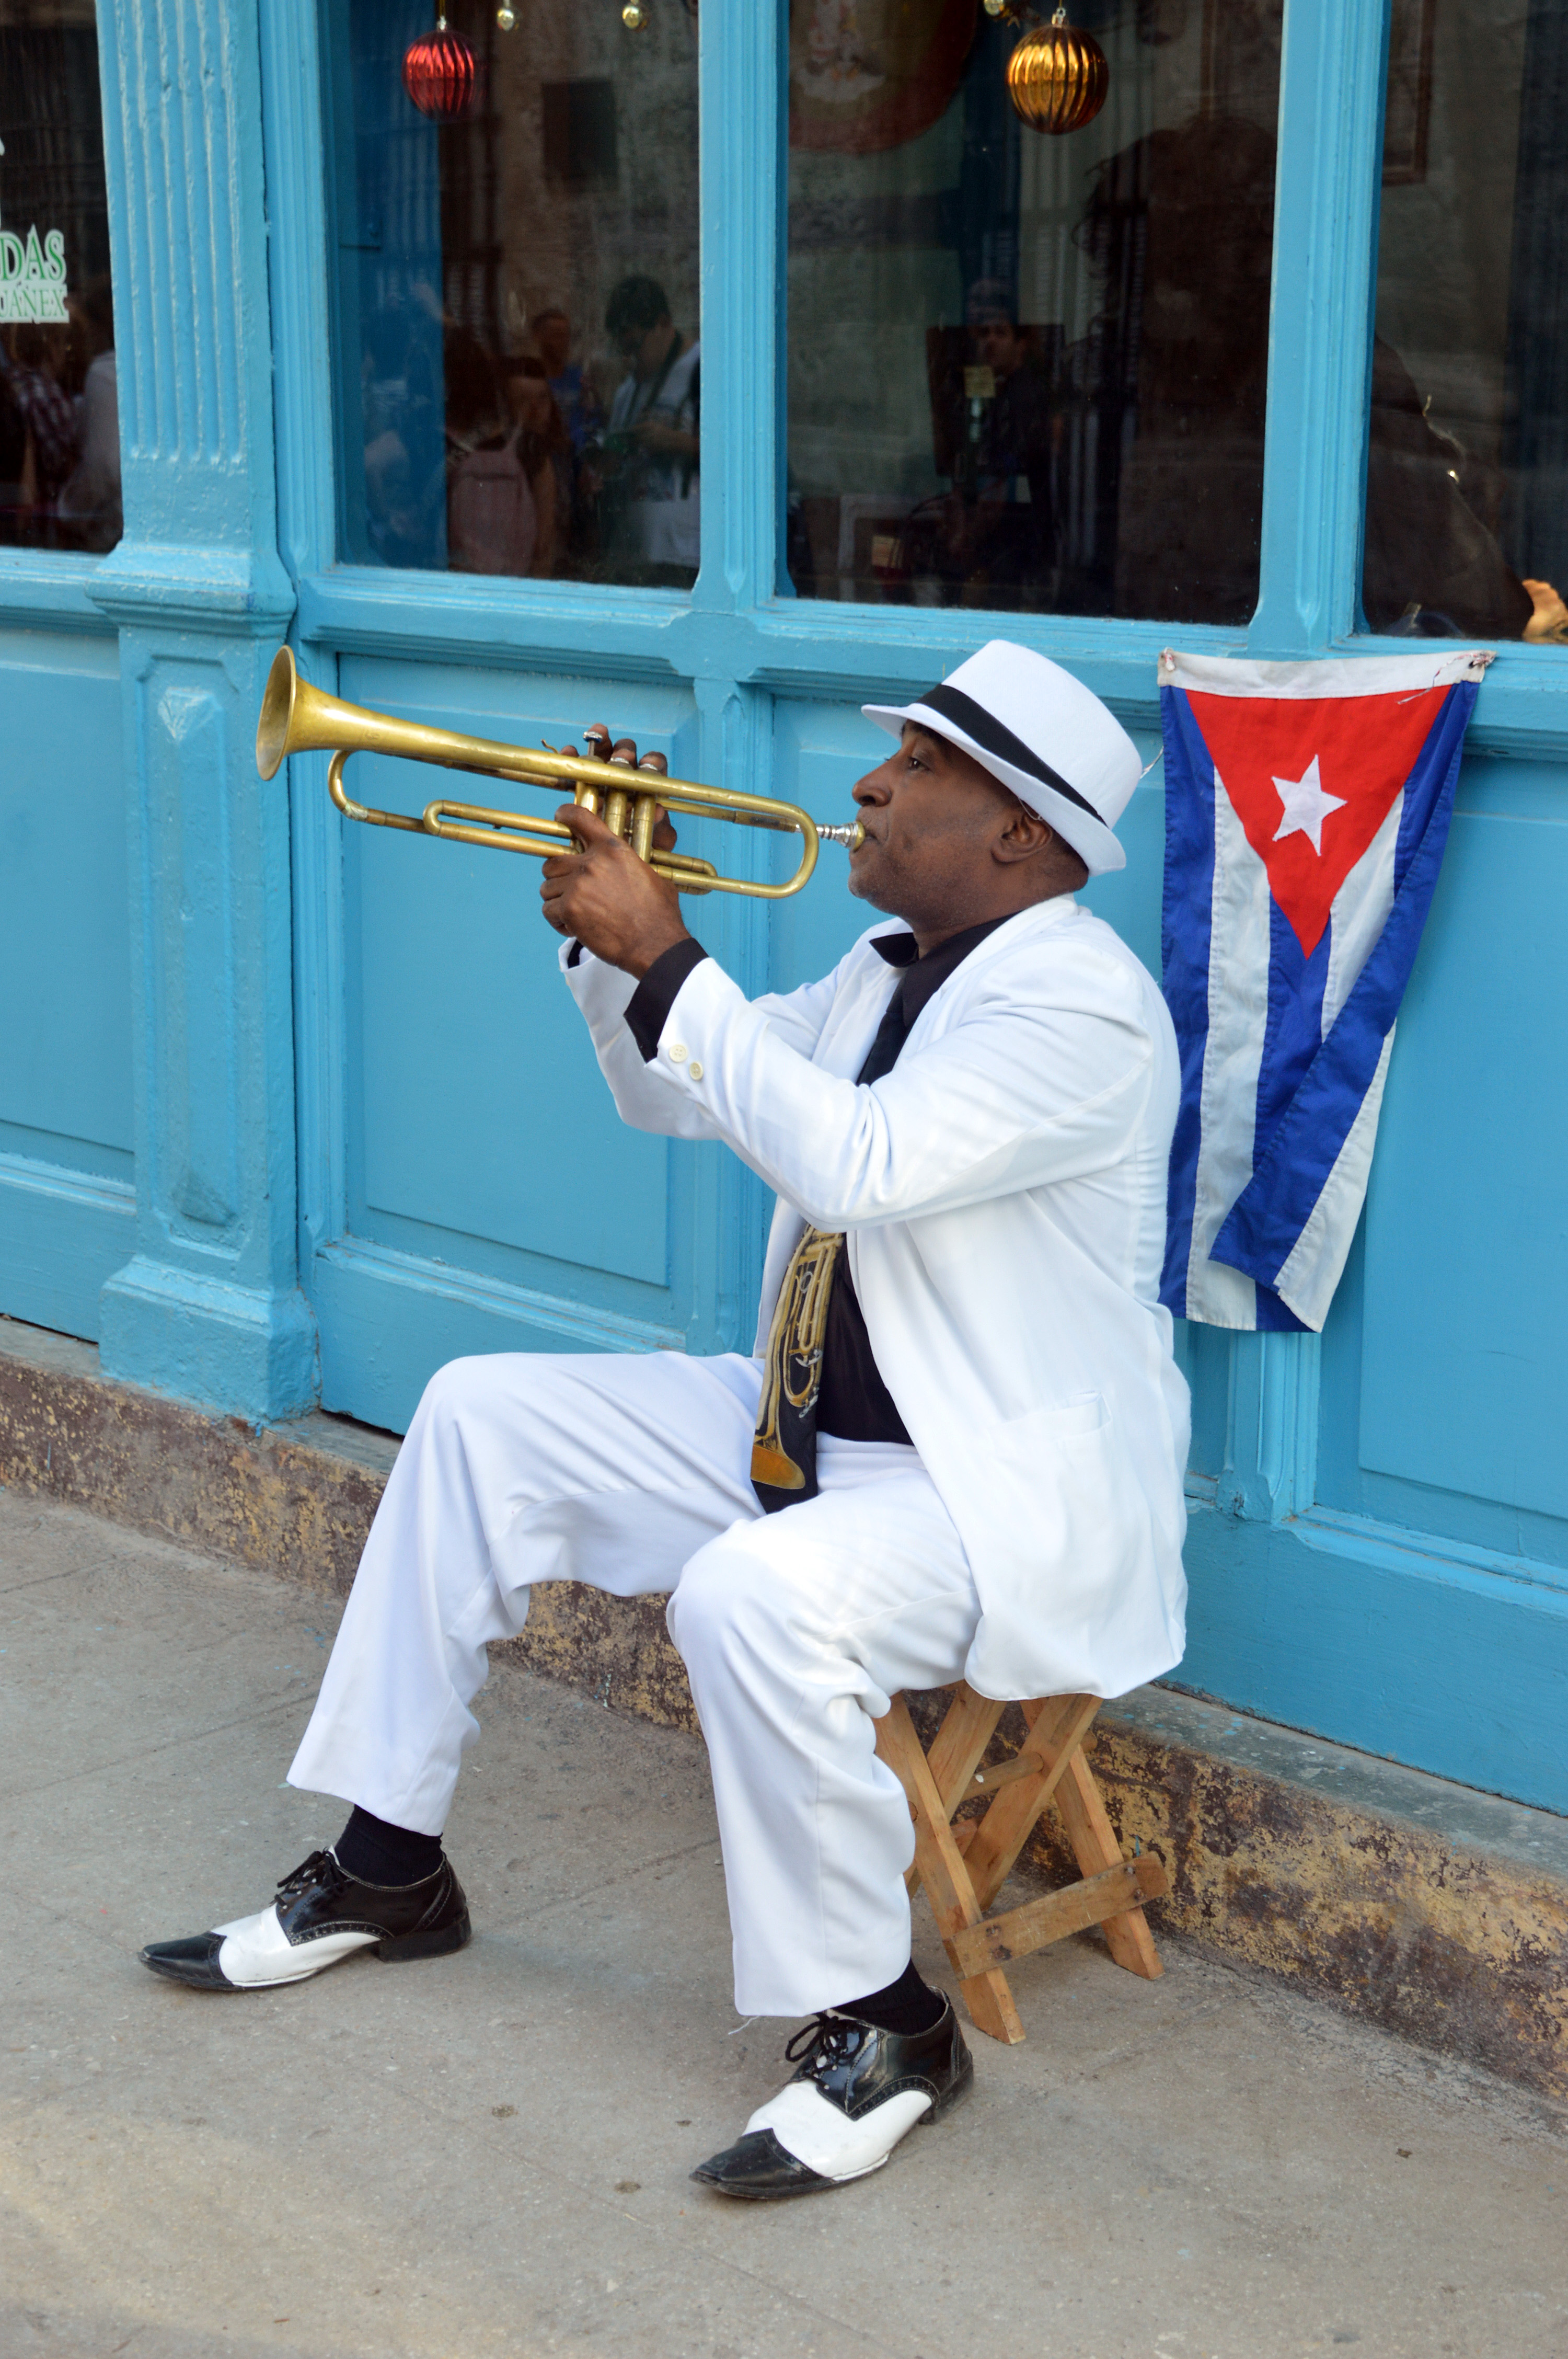 Carnival Cruise Line Adds 20 Cruises to Cuba from Tampa Aboard Carnival Paradise in 2019